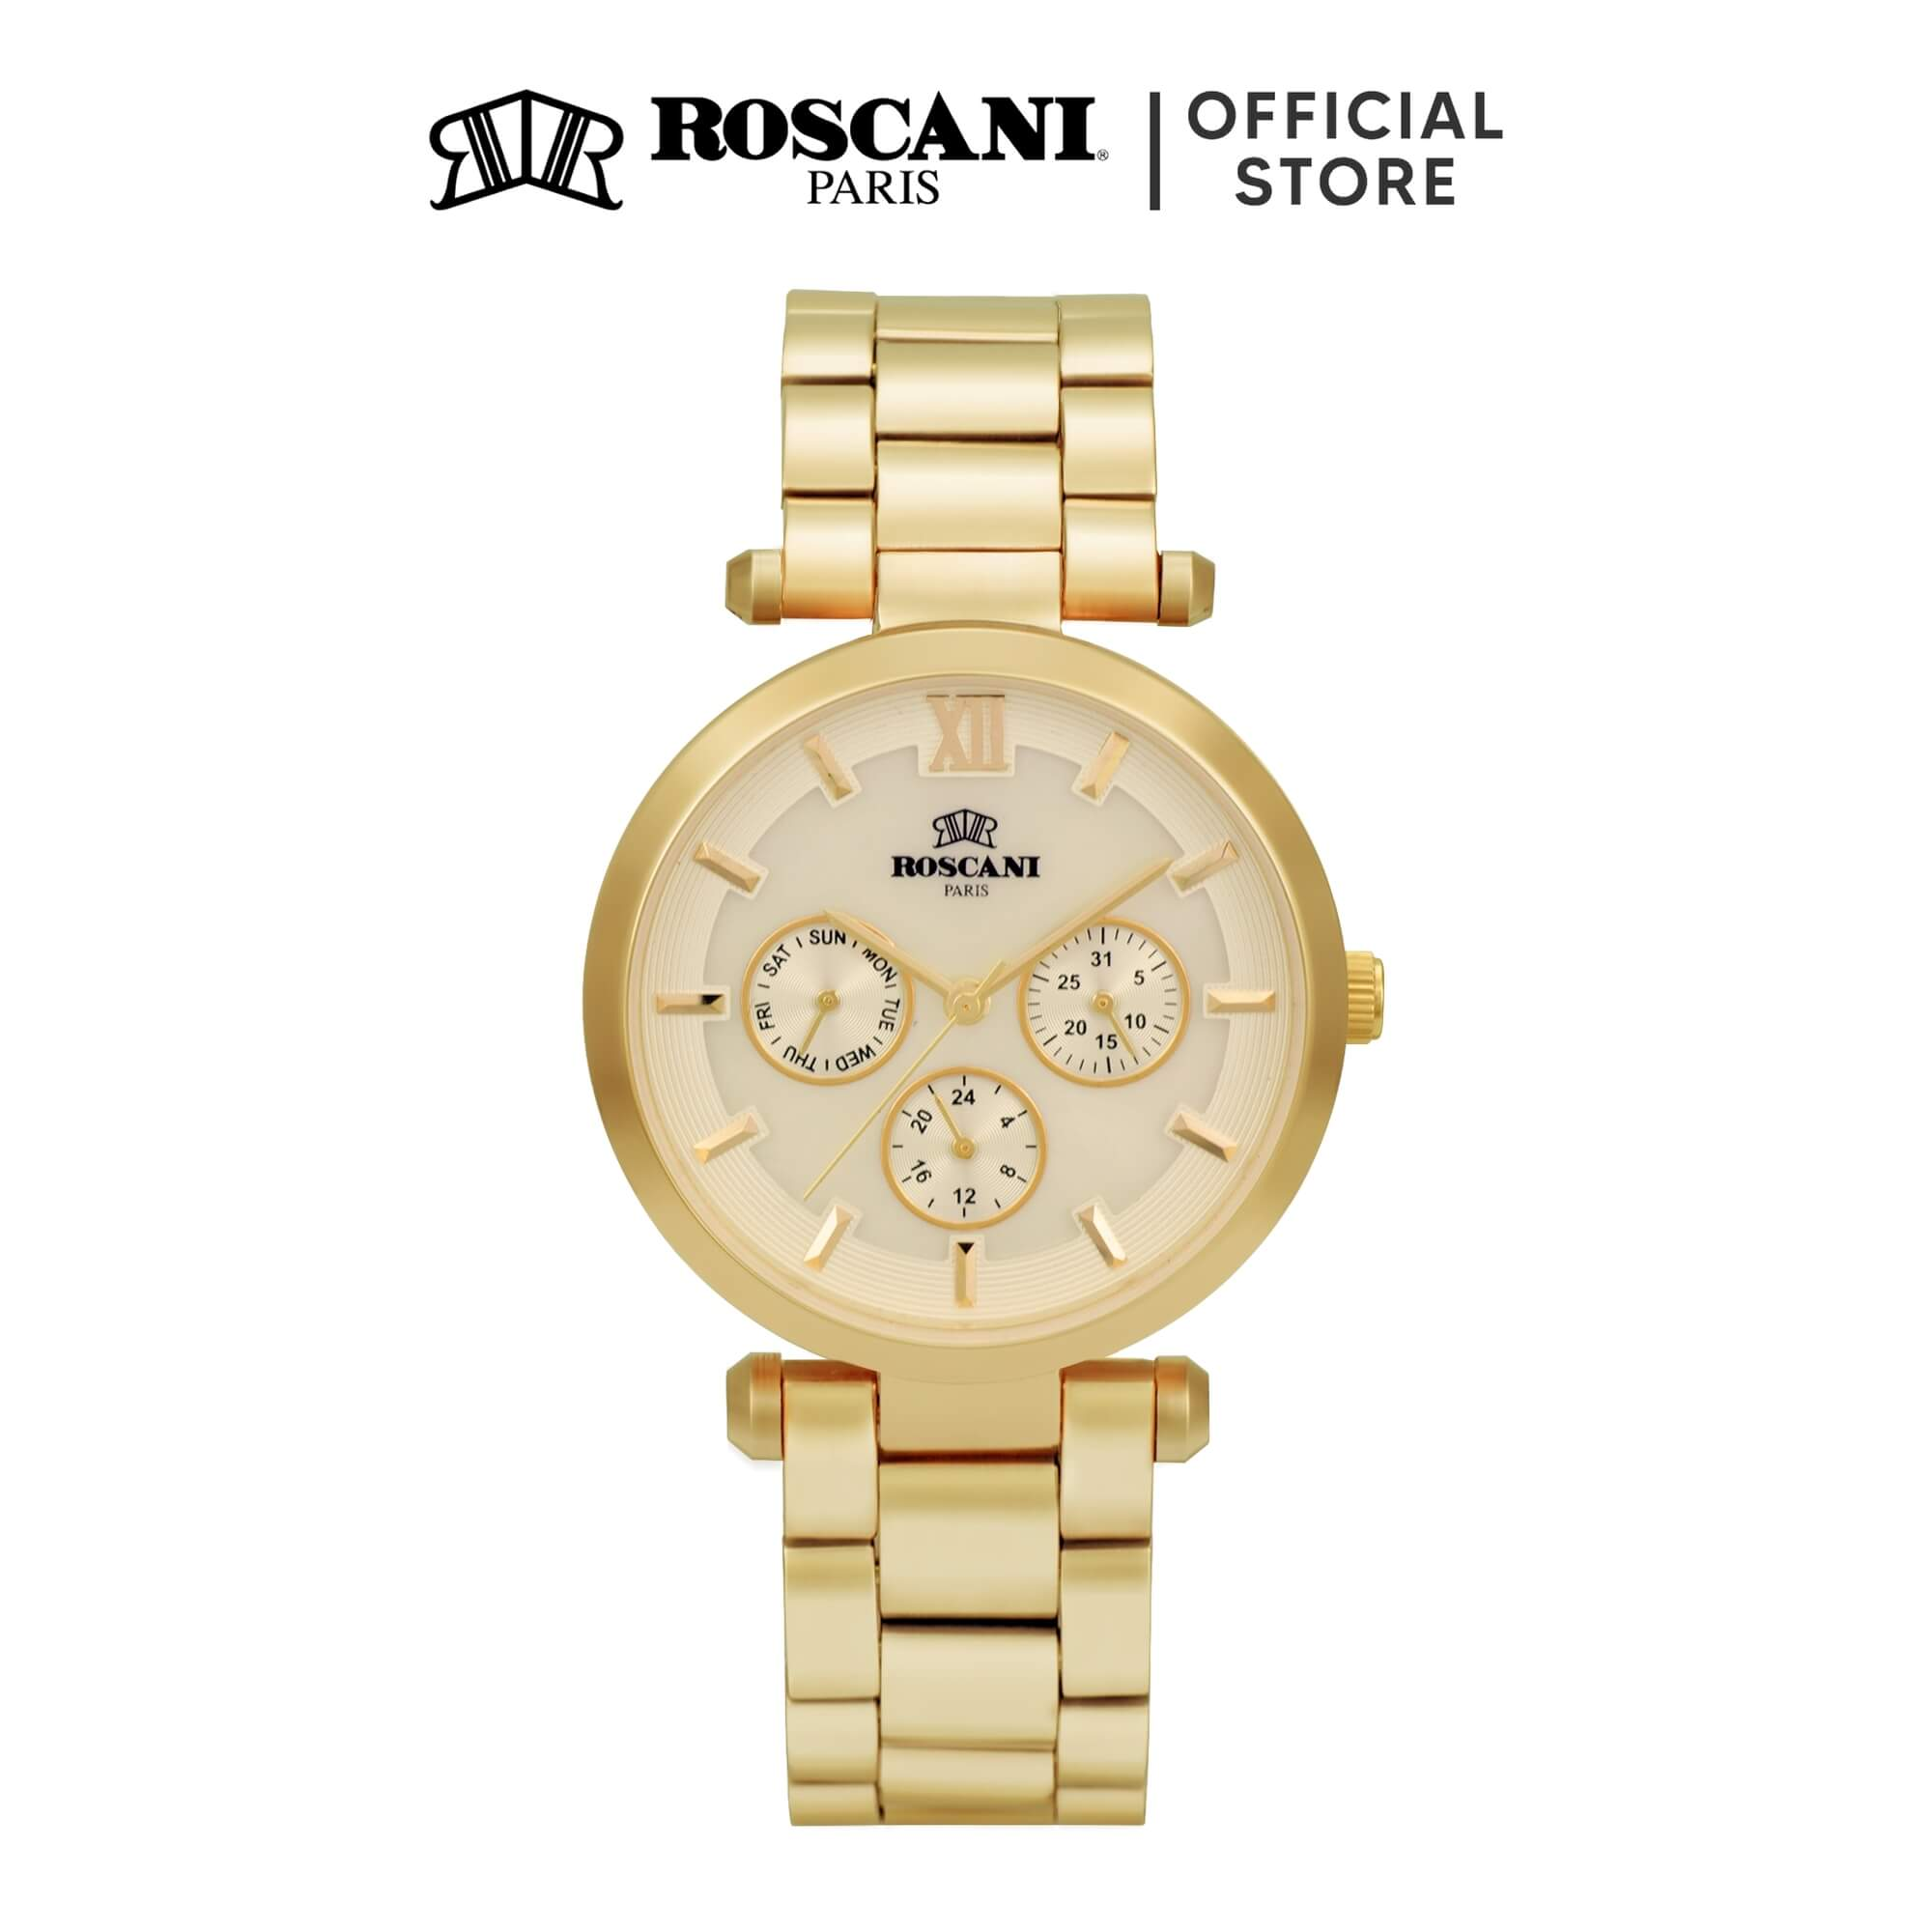 Roscani Chanel B45 (Multifunction + WR 5ATM) Bracelet Women Watch